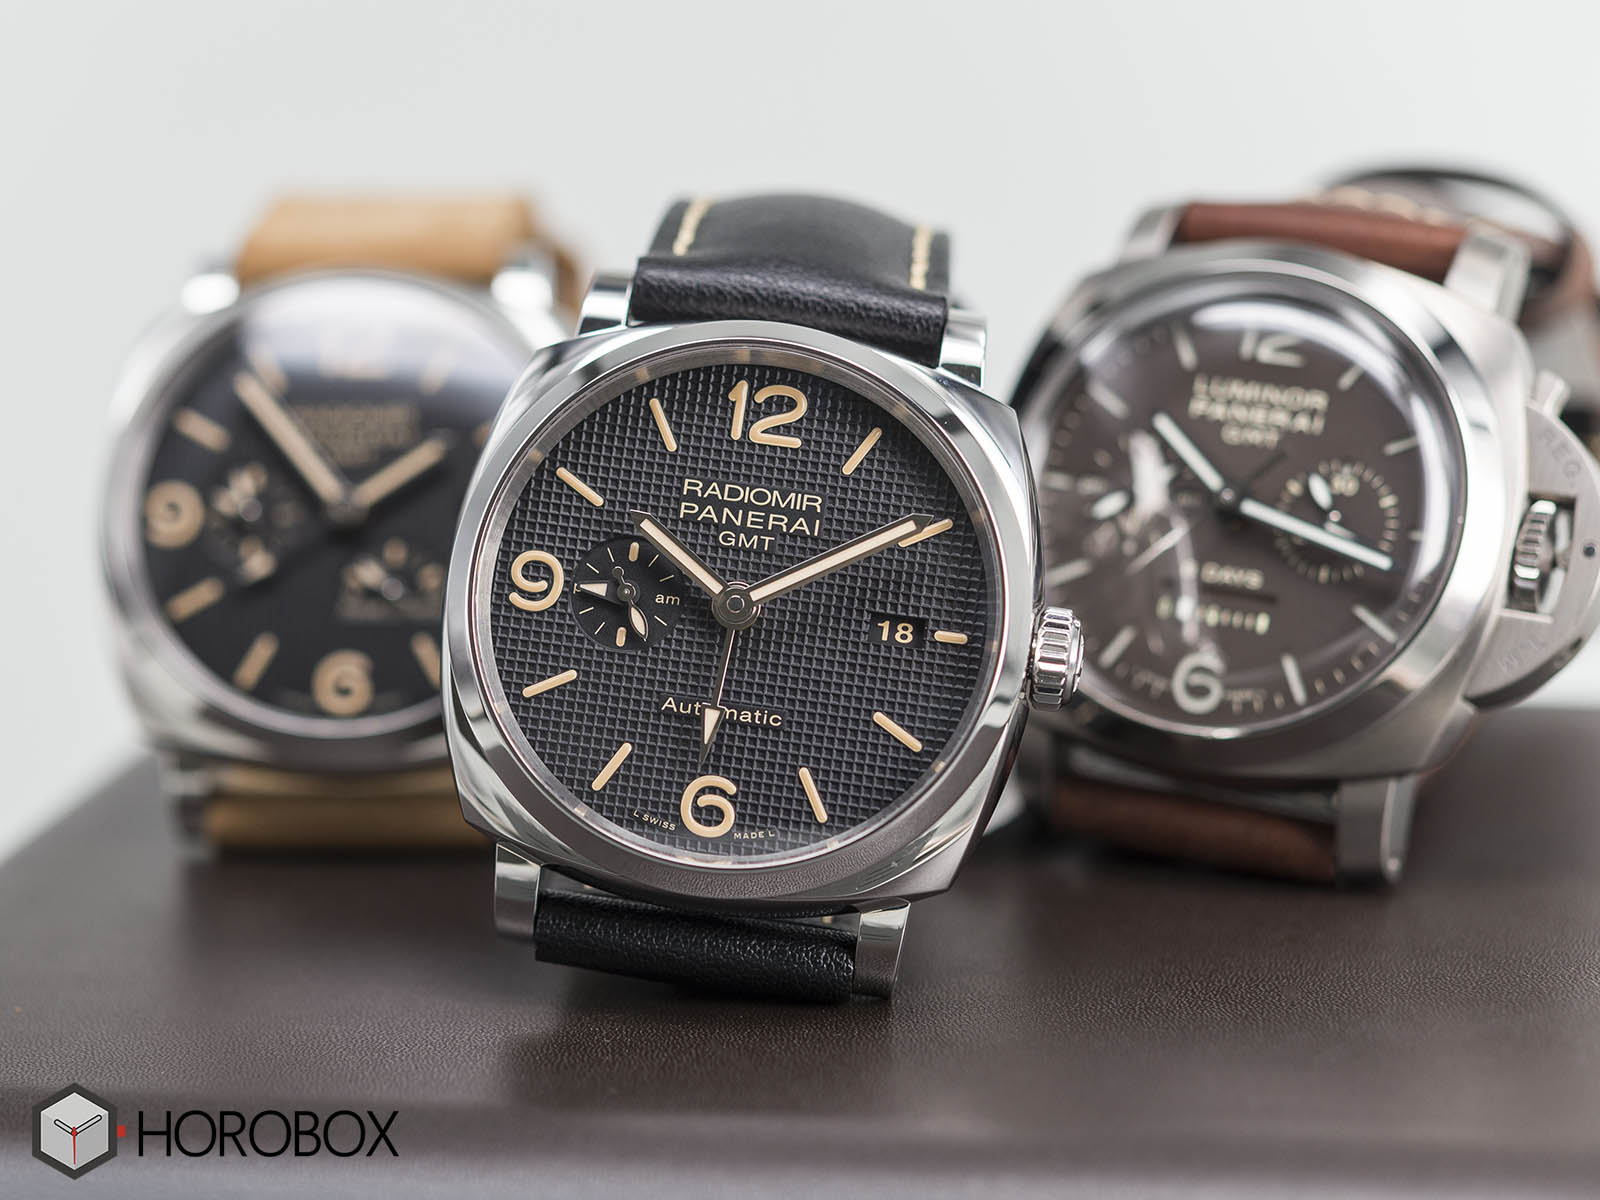 Officine-panerai-power-reserve-7.jpg